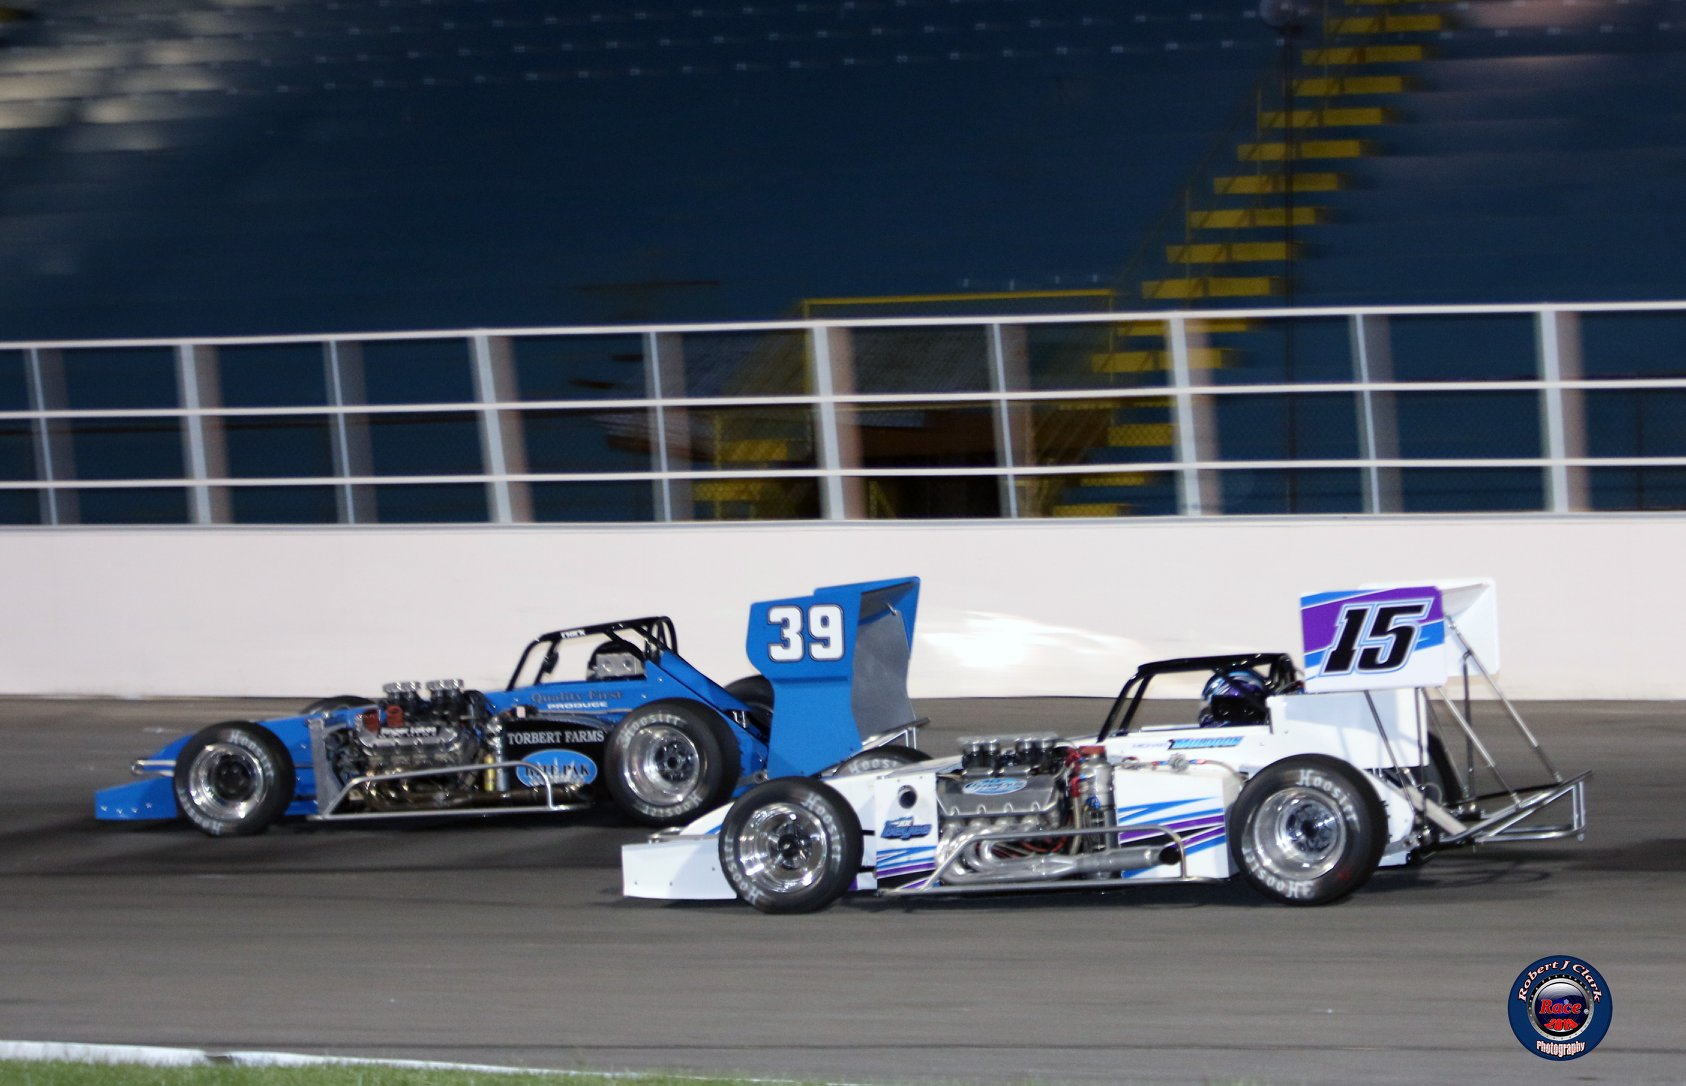 Alison Sload (39) races with Mike Muldoon Saturday, June 8 at Oswego (Robert J Clark photo)